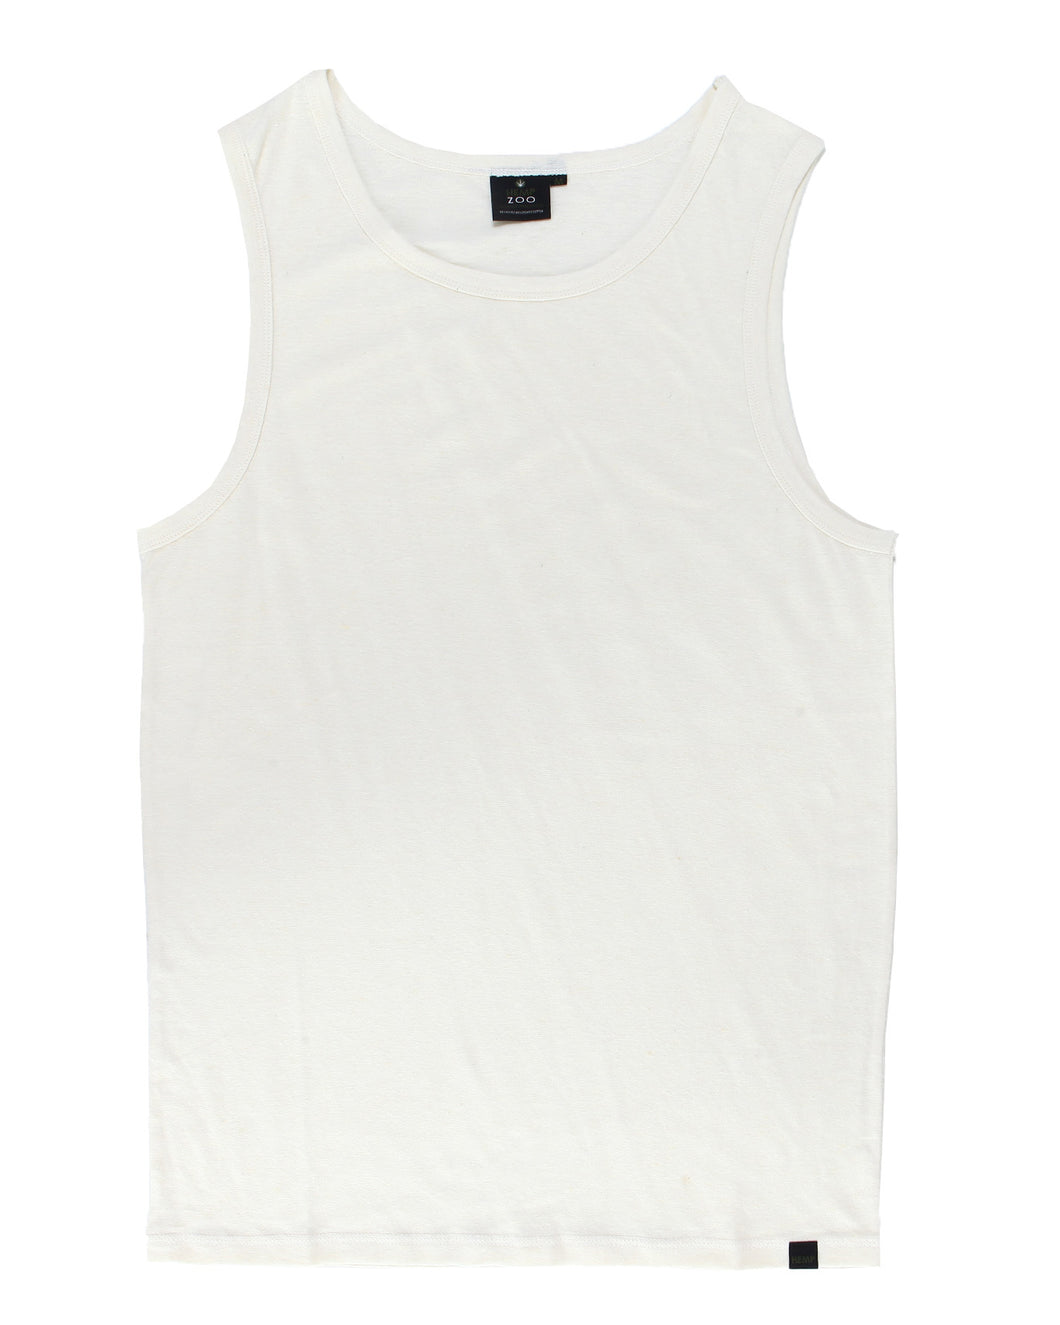 Hemp Tank Top Armor -  White